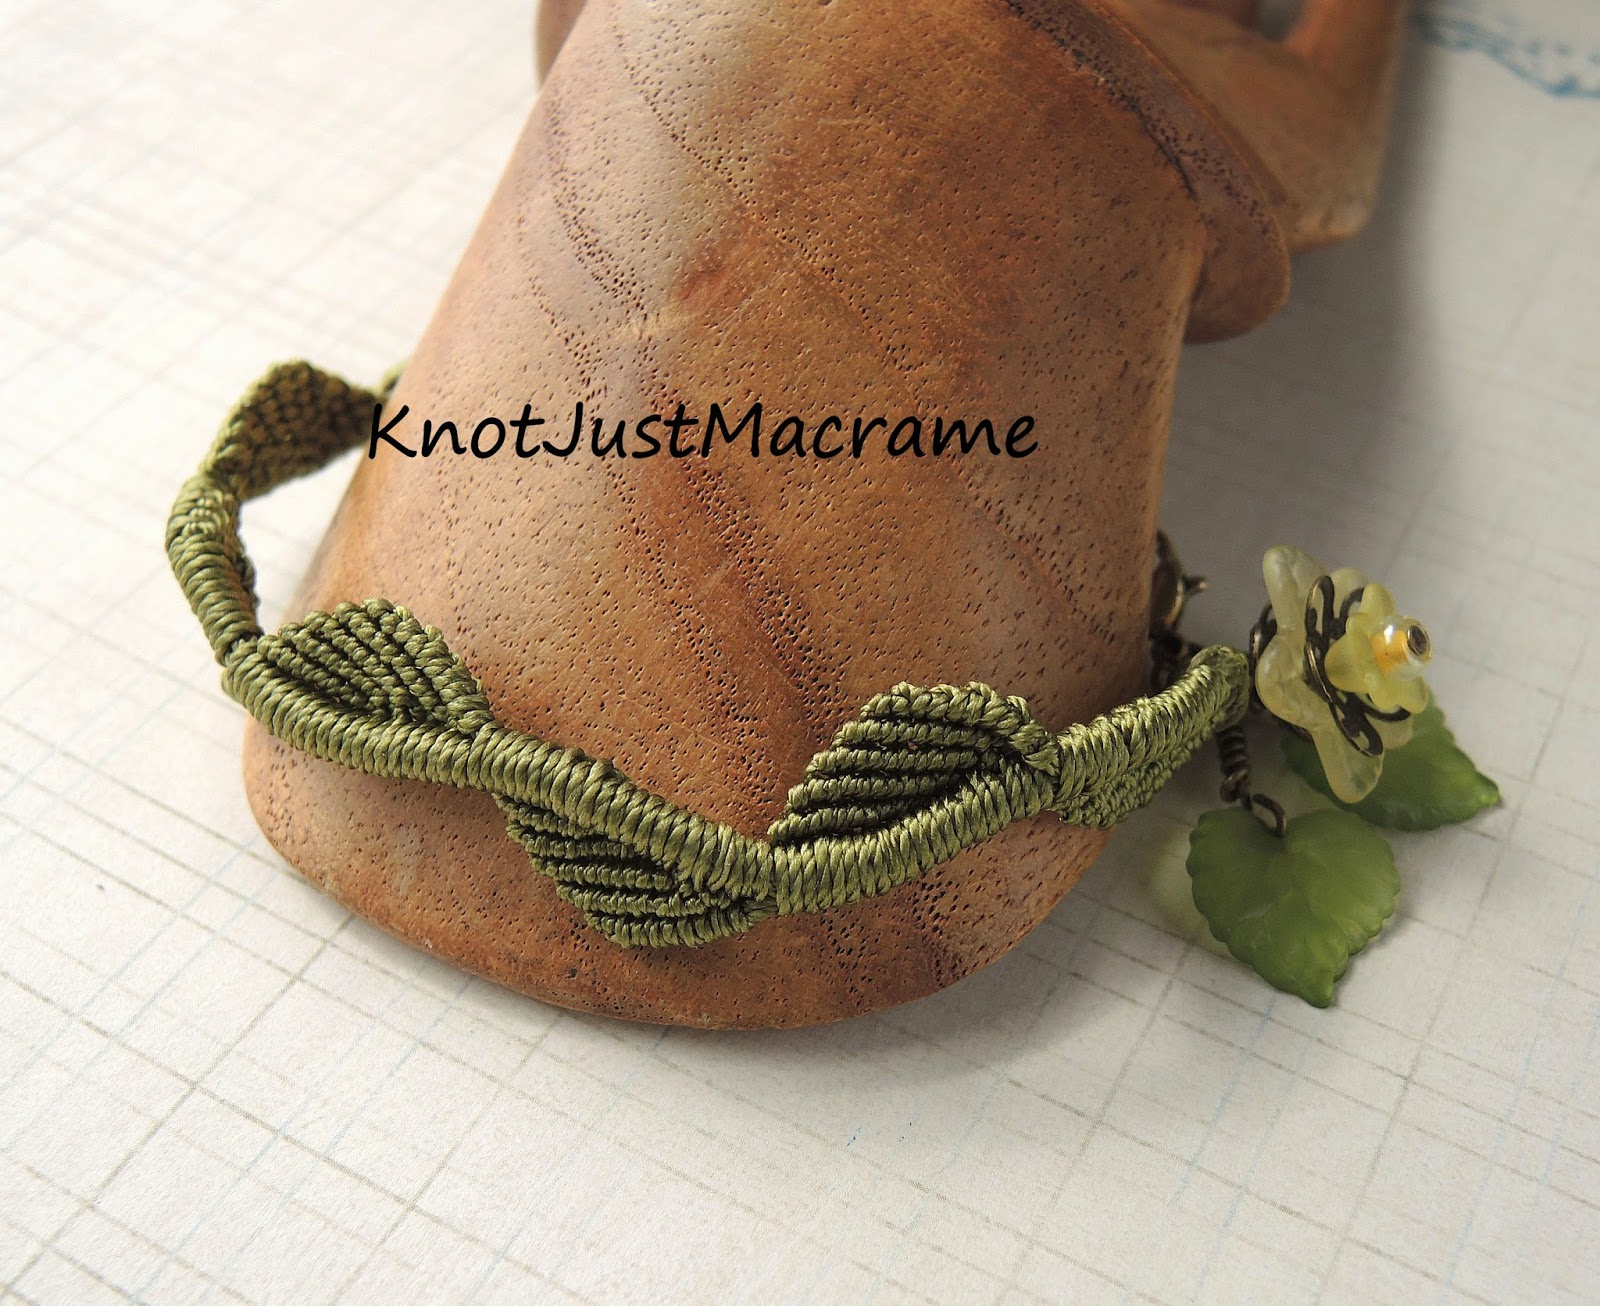 Micro macrame leaves and vine by Sherri Stokey of Knot Just Macrame.